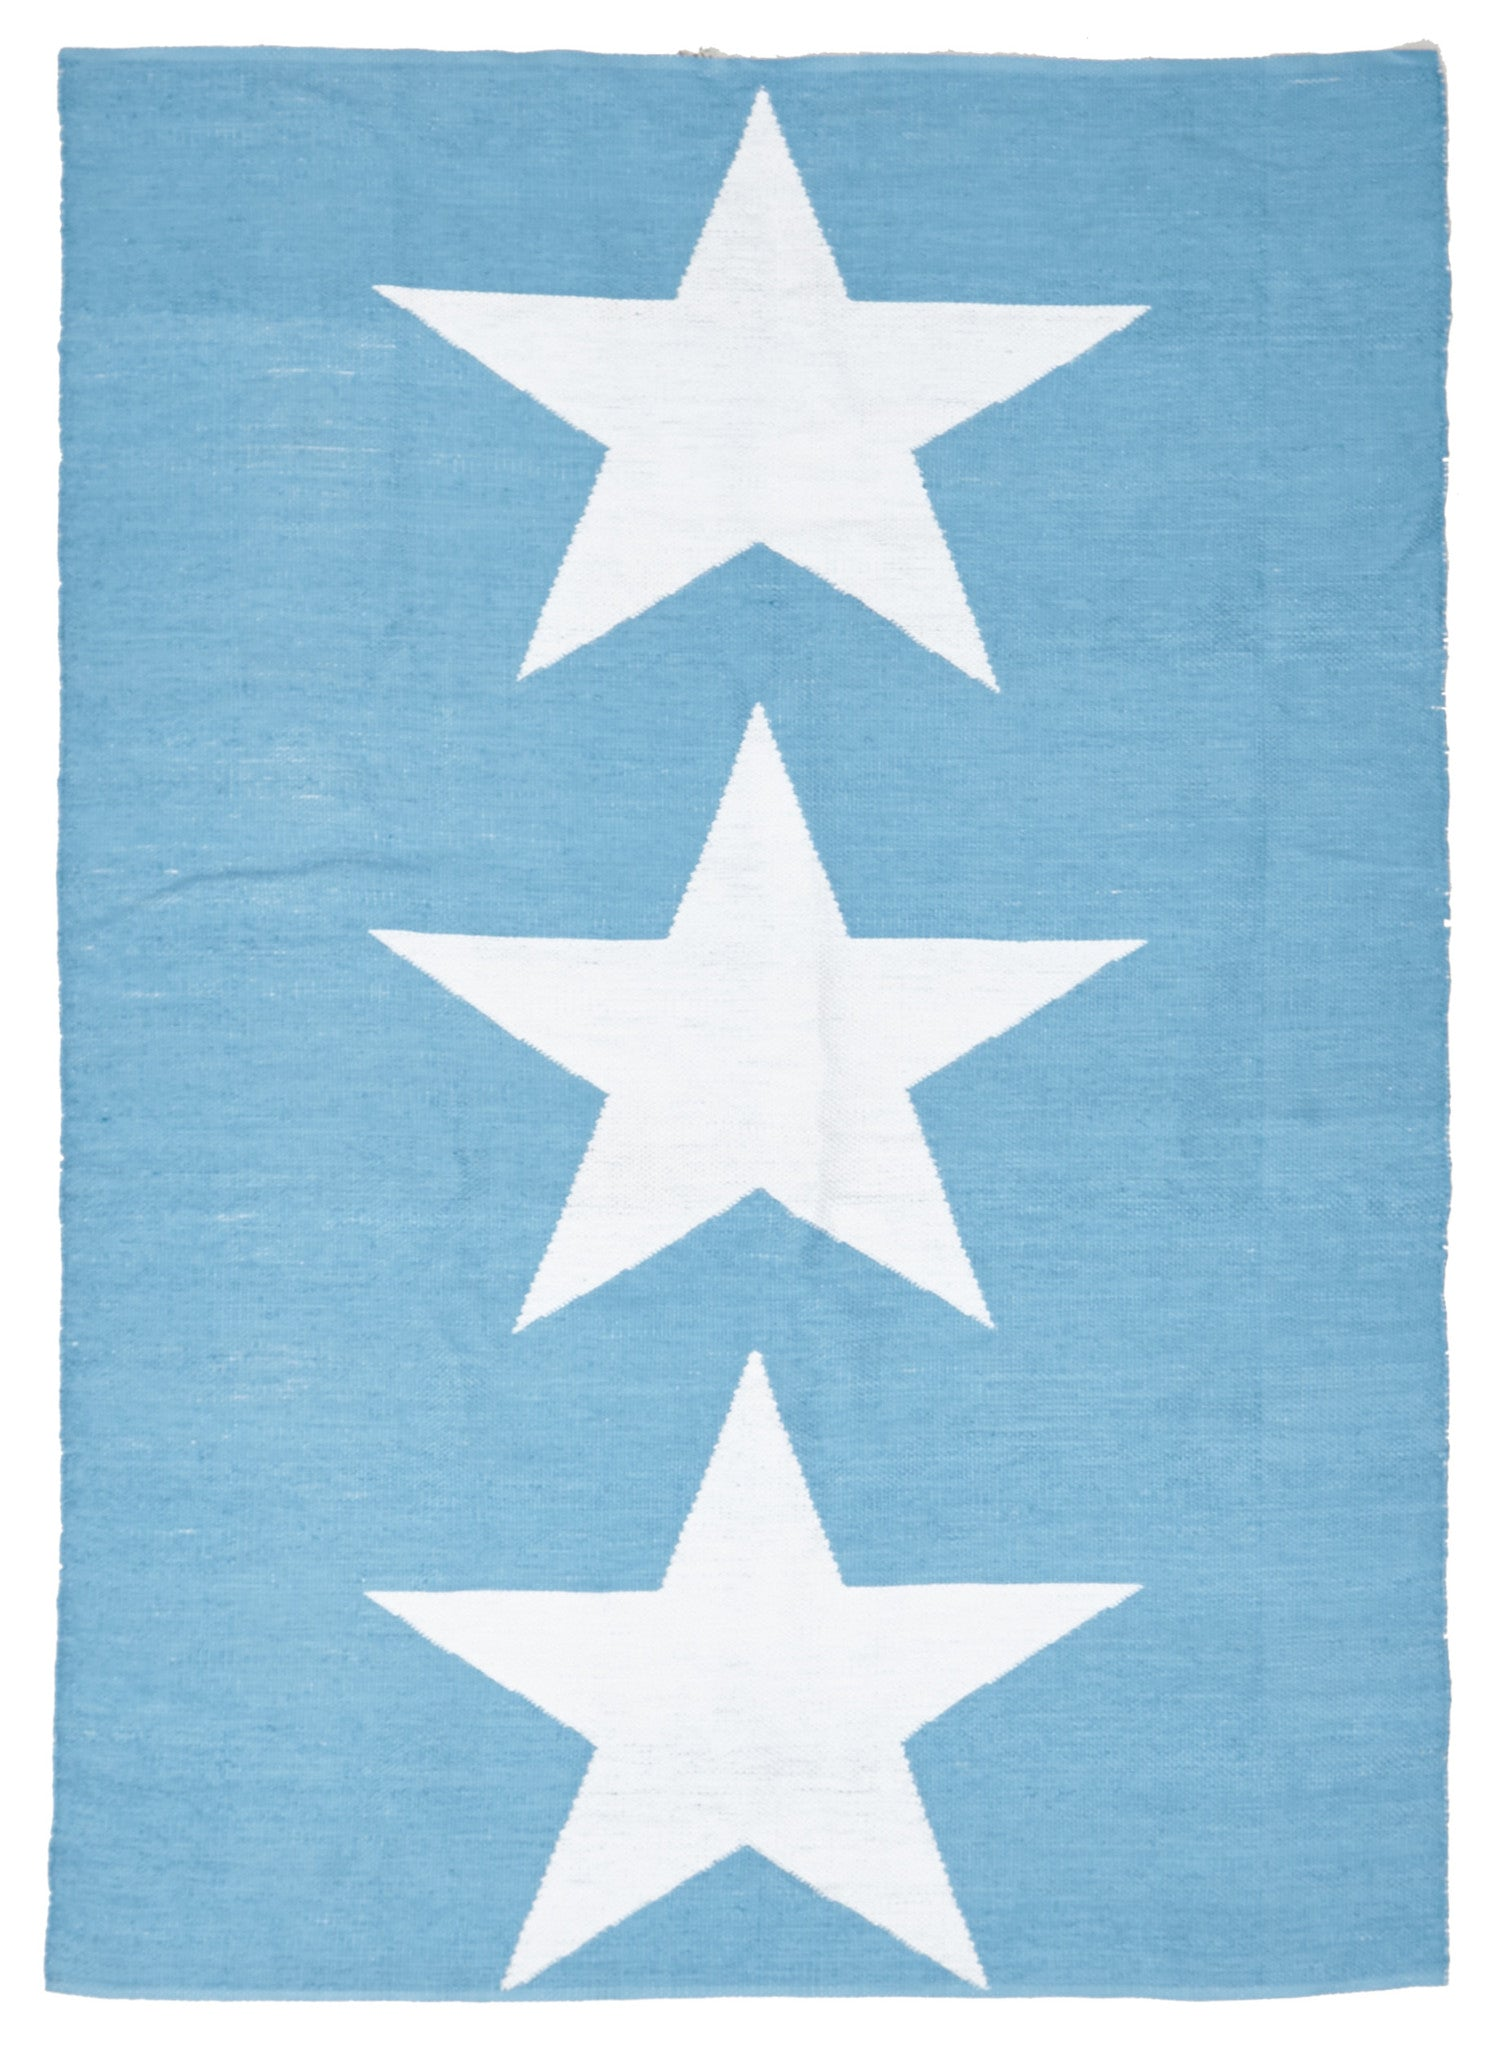 Coastal 4 Indoor Outdoor Rug - Star Turquoise White